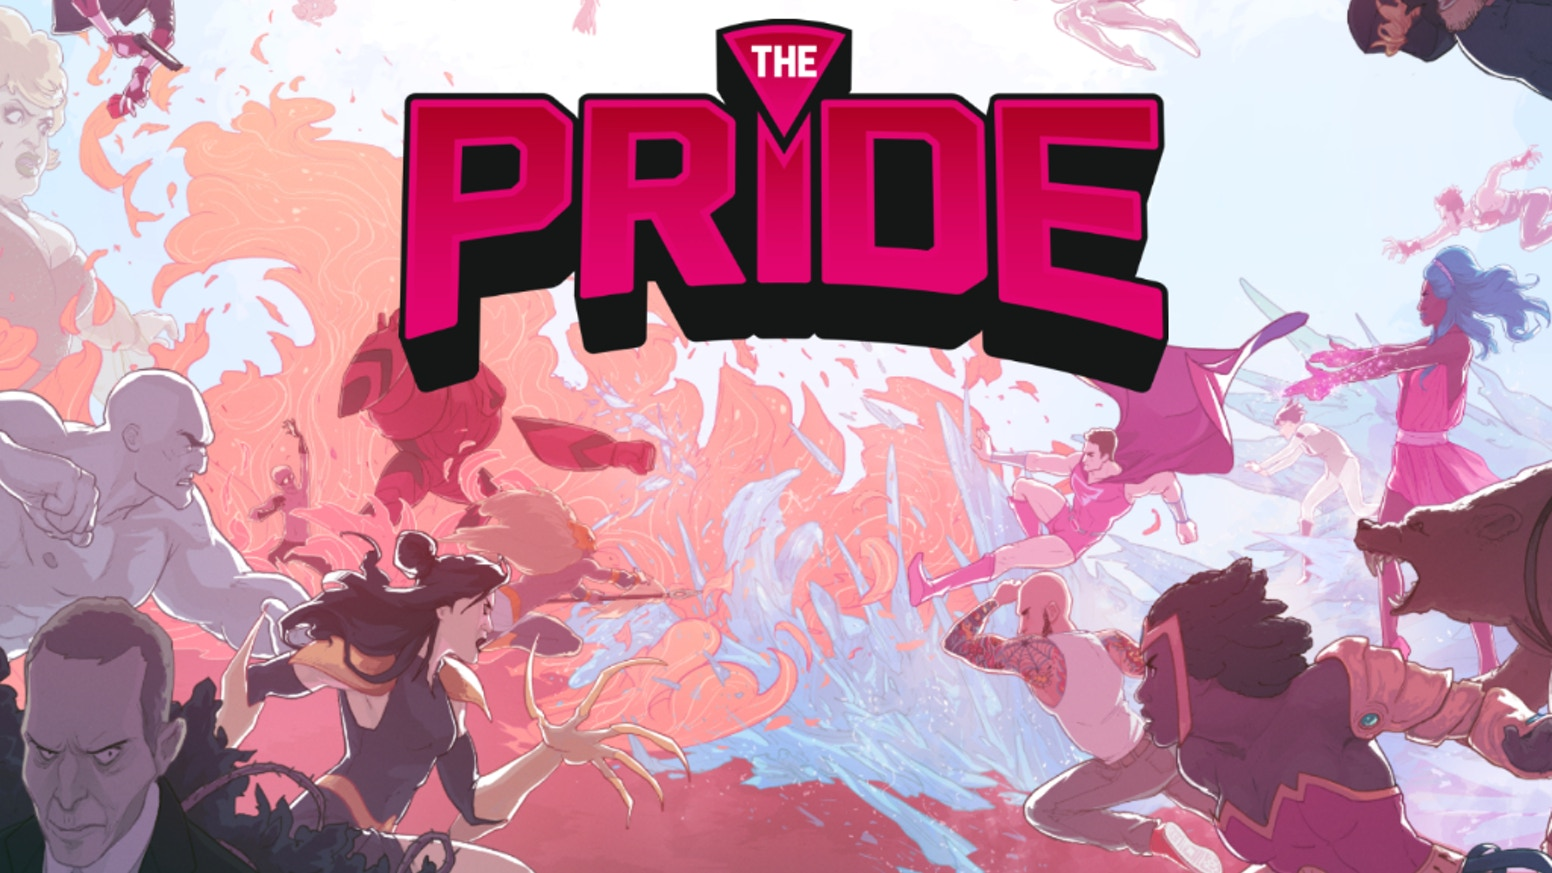 Collecting the entire first volume of The Pride, an LGBTQ superhero team, plus brand new stories,  into a huge, gorgeous hardcover collection.